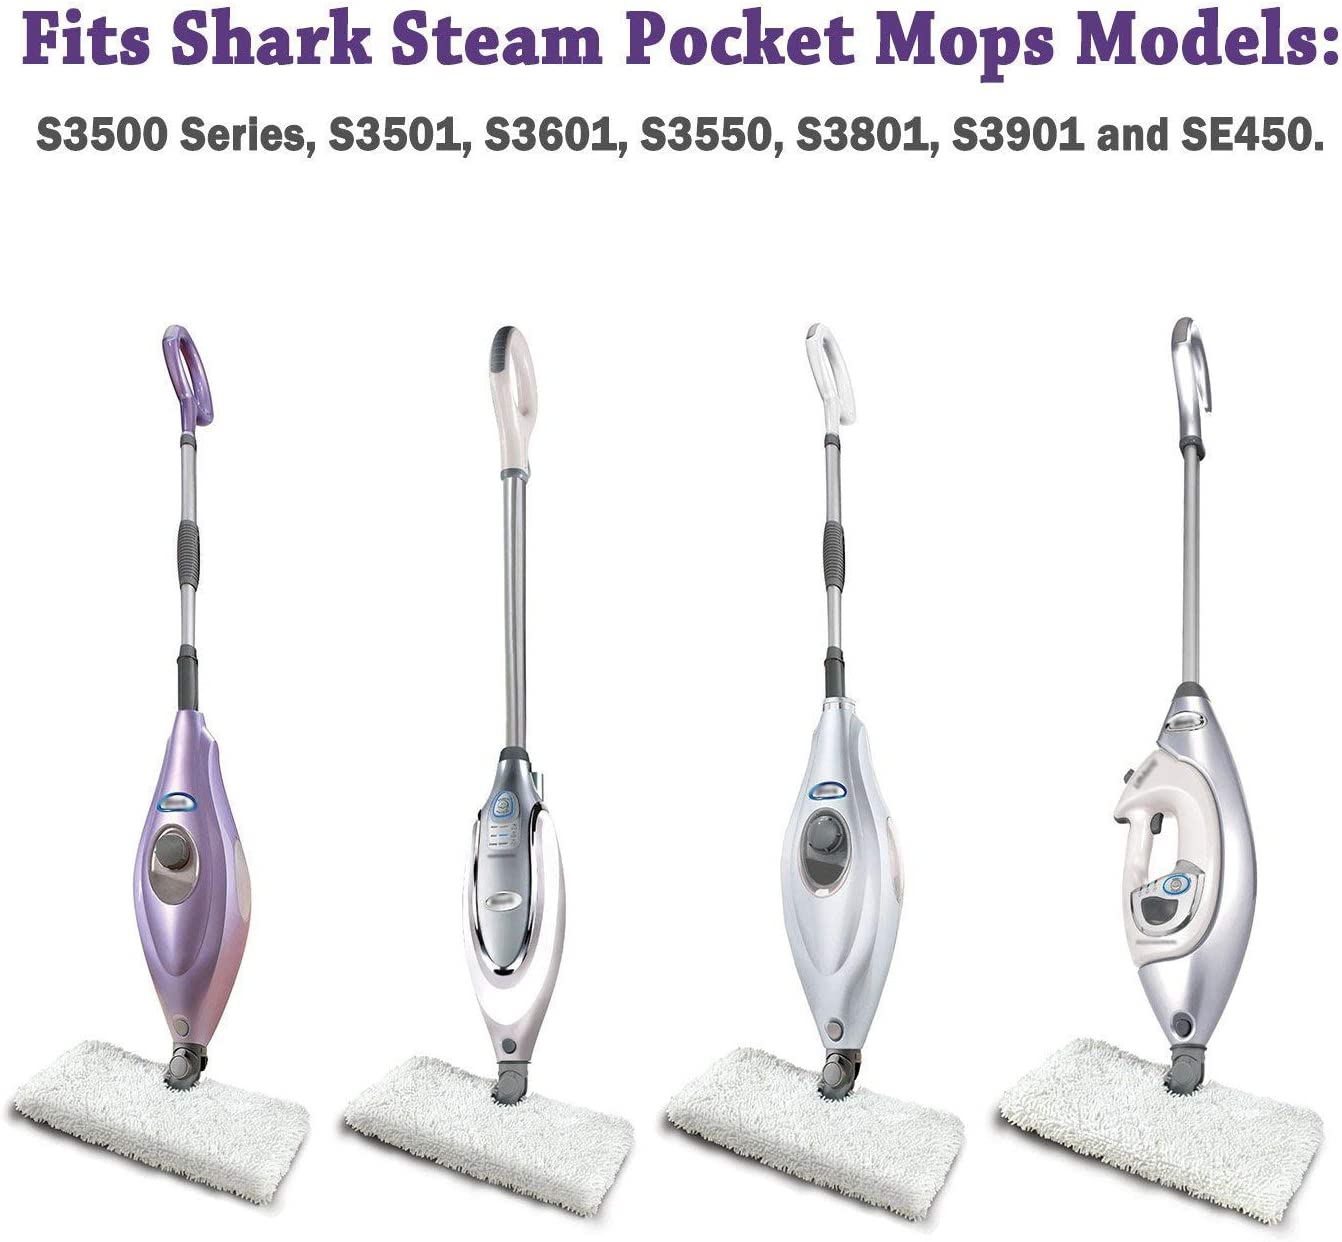 Drita Replacement Microfiber Steam Mop Cleaning Pads Fits Shark Steam Pocket Mops S3500 Series S3501 S3601 S3550 S3901 S3801 SE450 S3801CO S3601D 3 Pack White